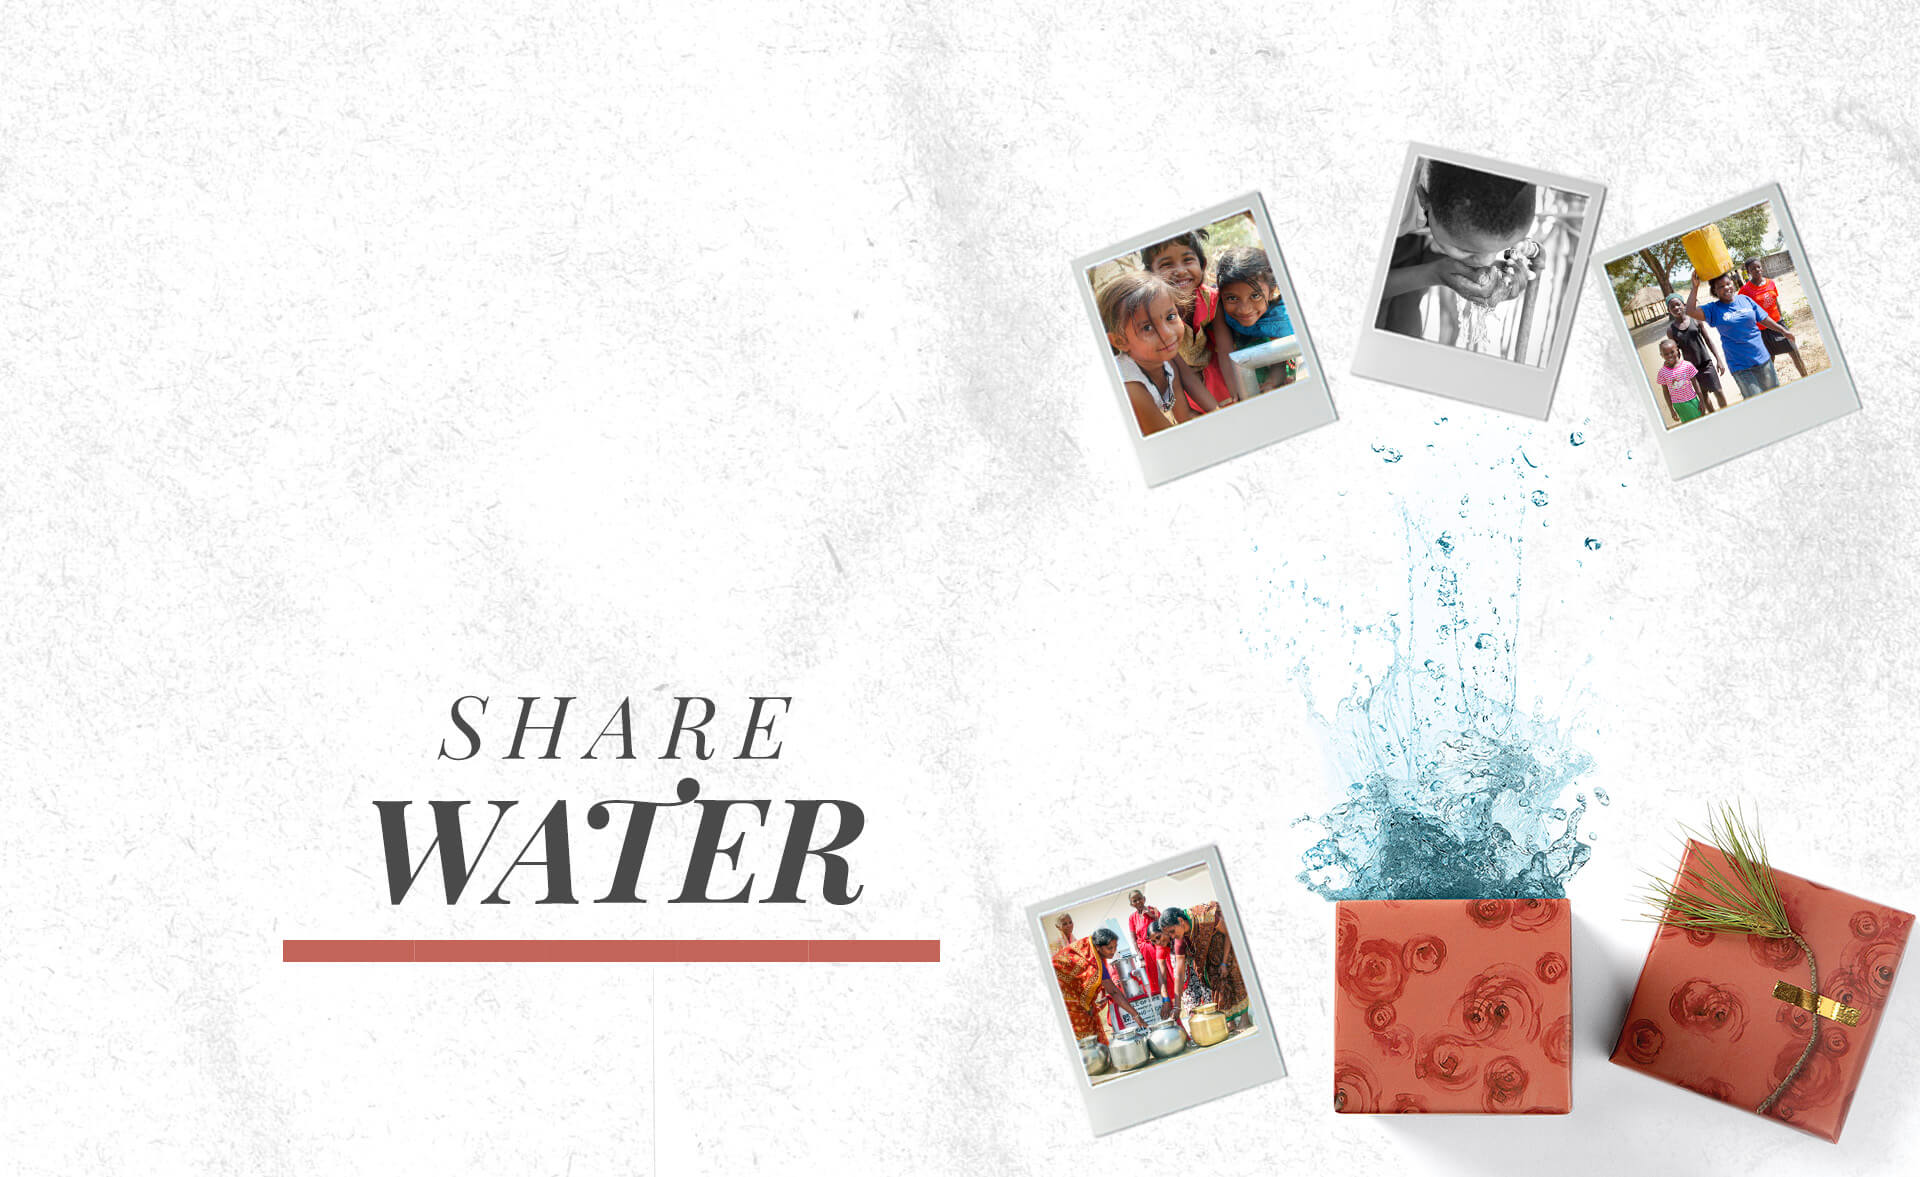 Share Water